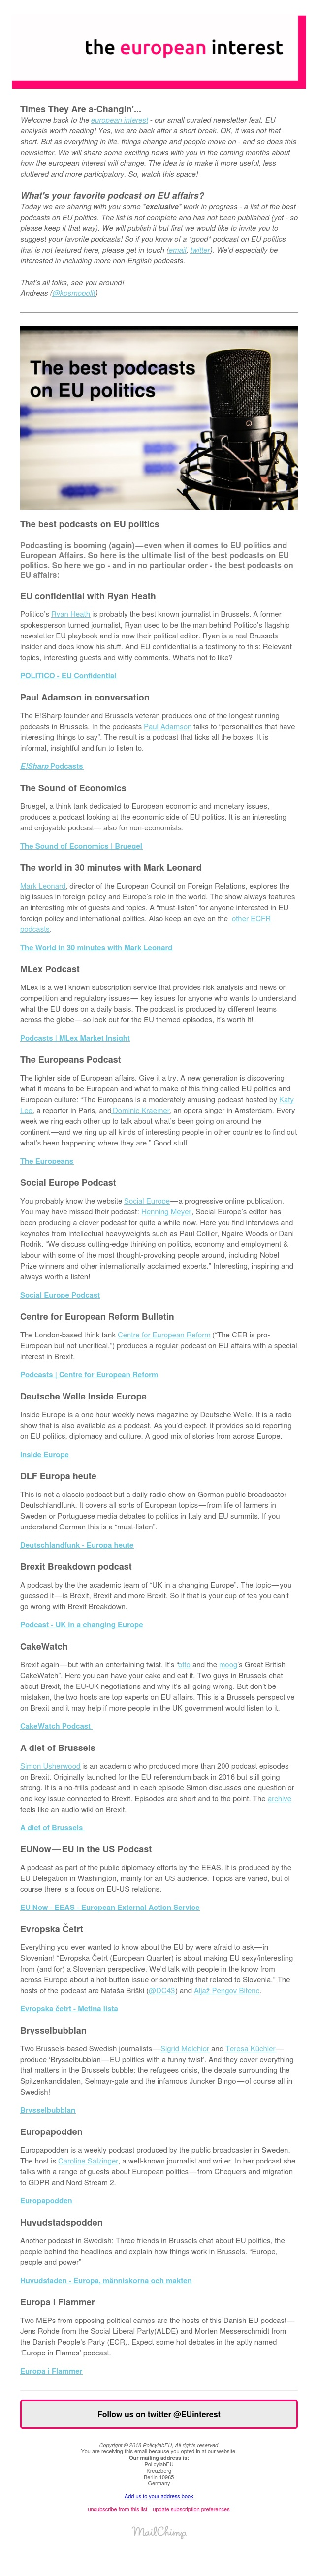 the european interest: the best podcasts on EU politics